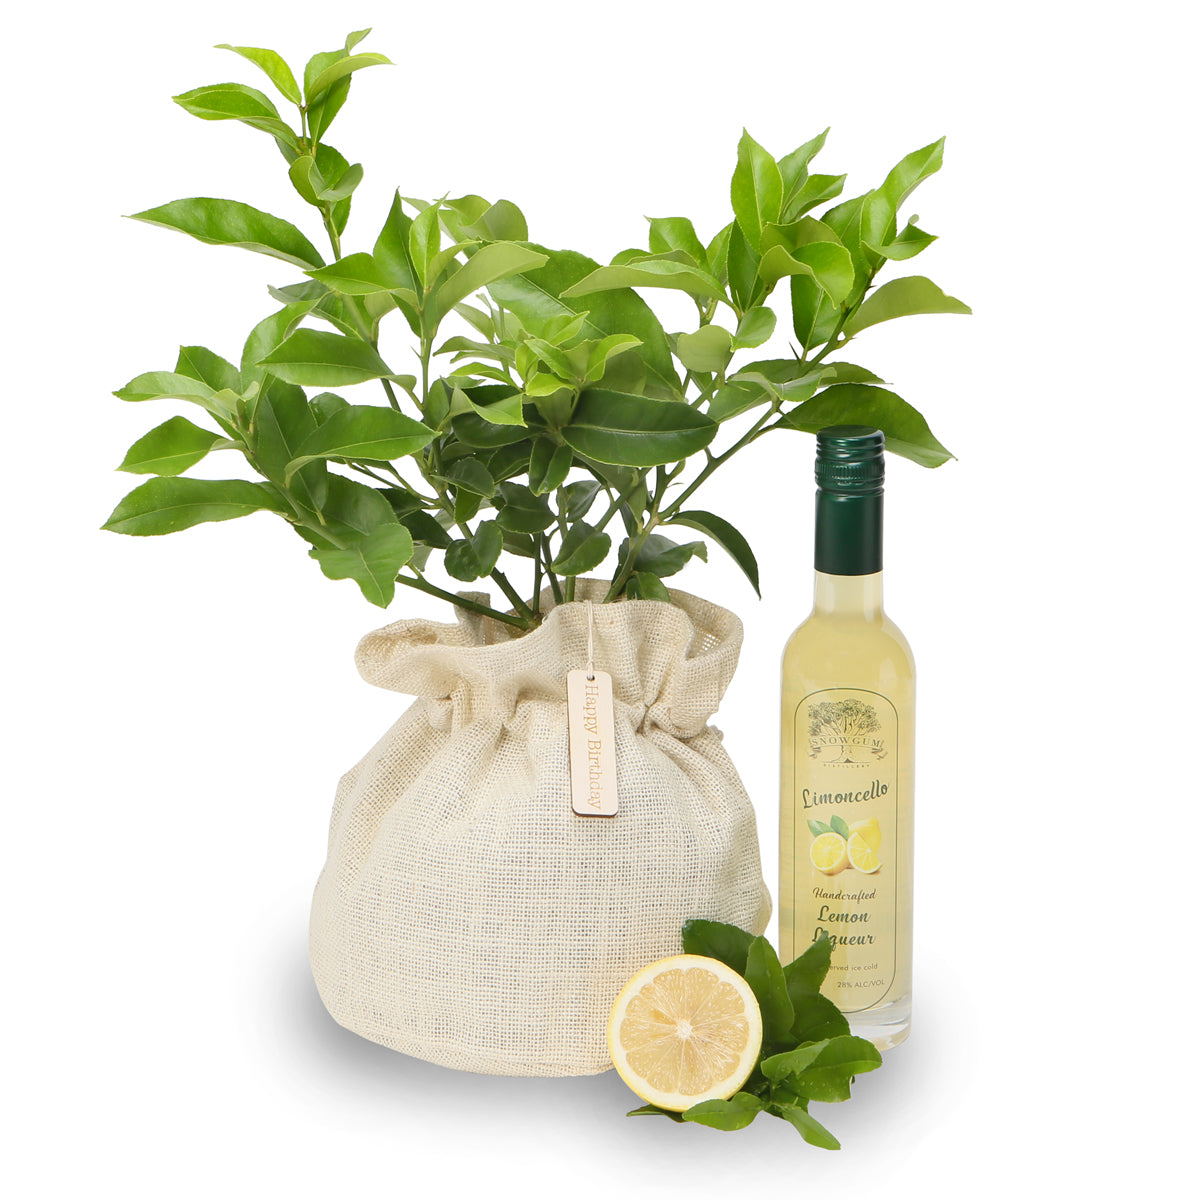 luscious Limoncello lemon tree gift